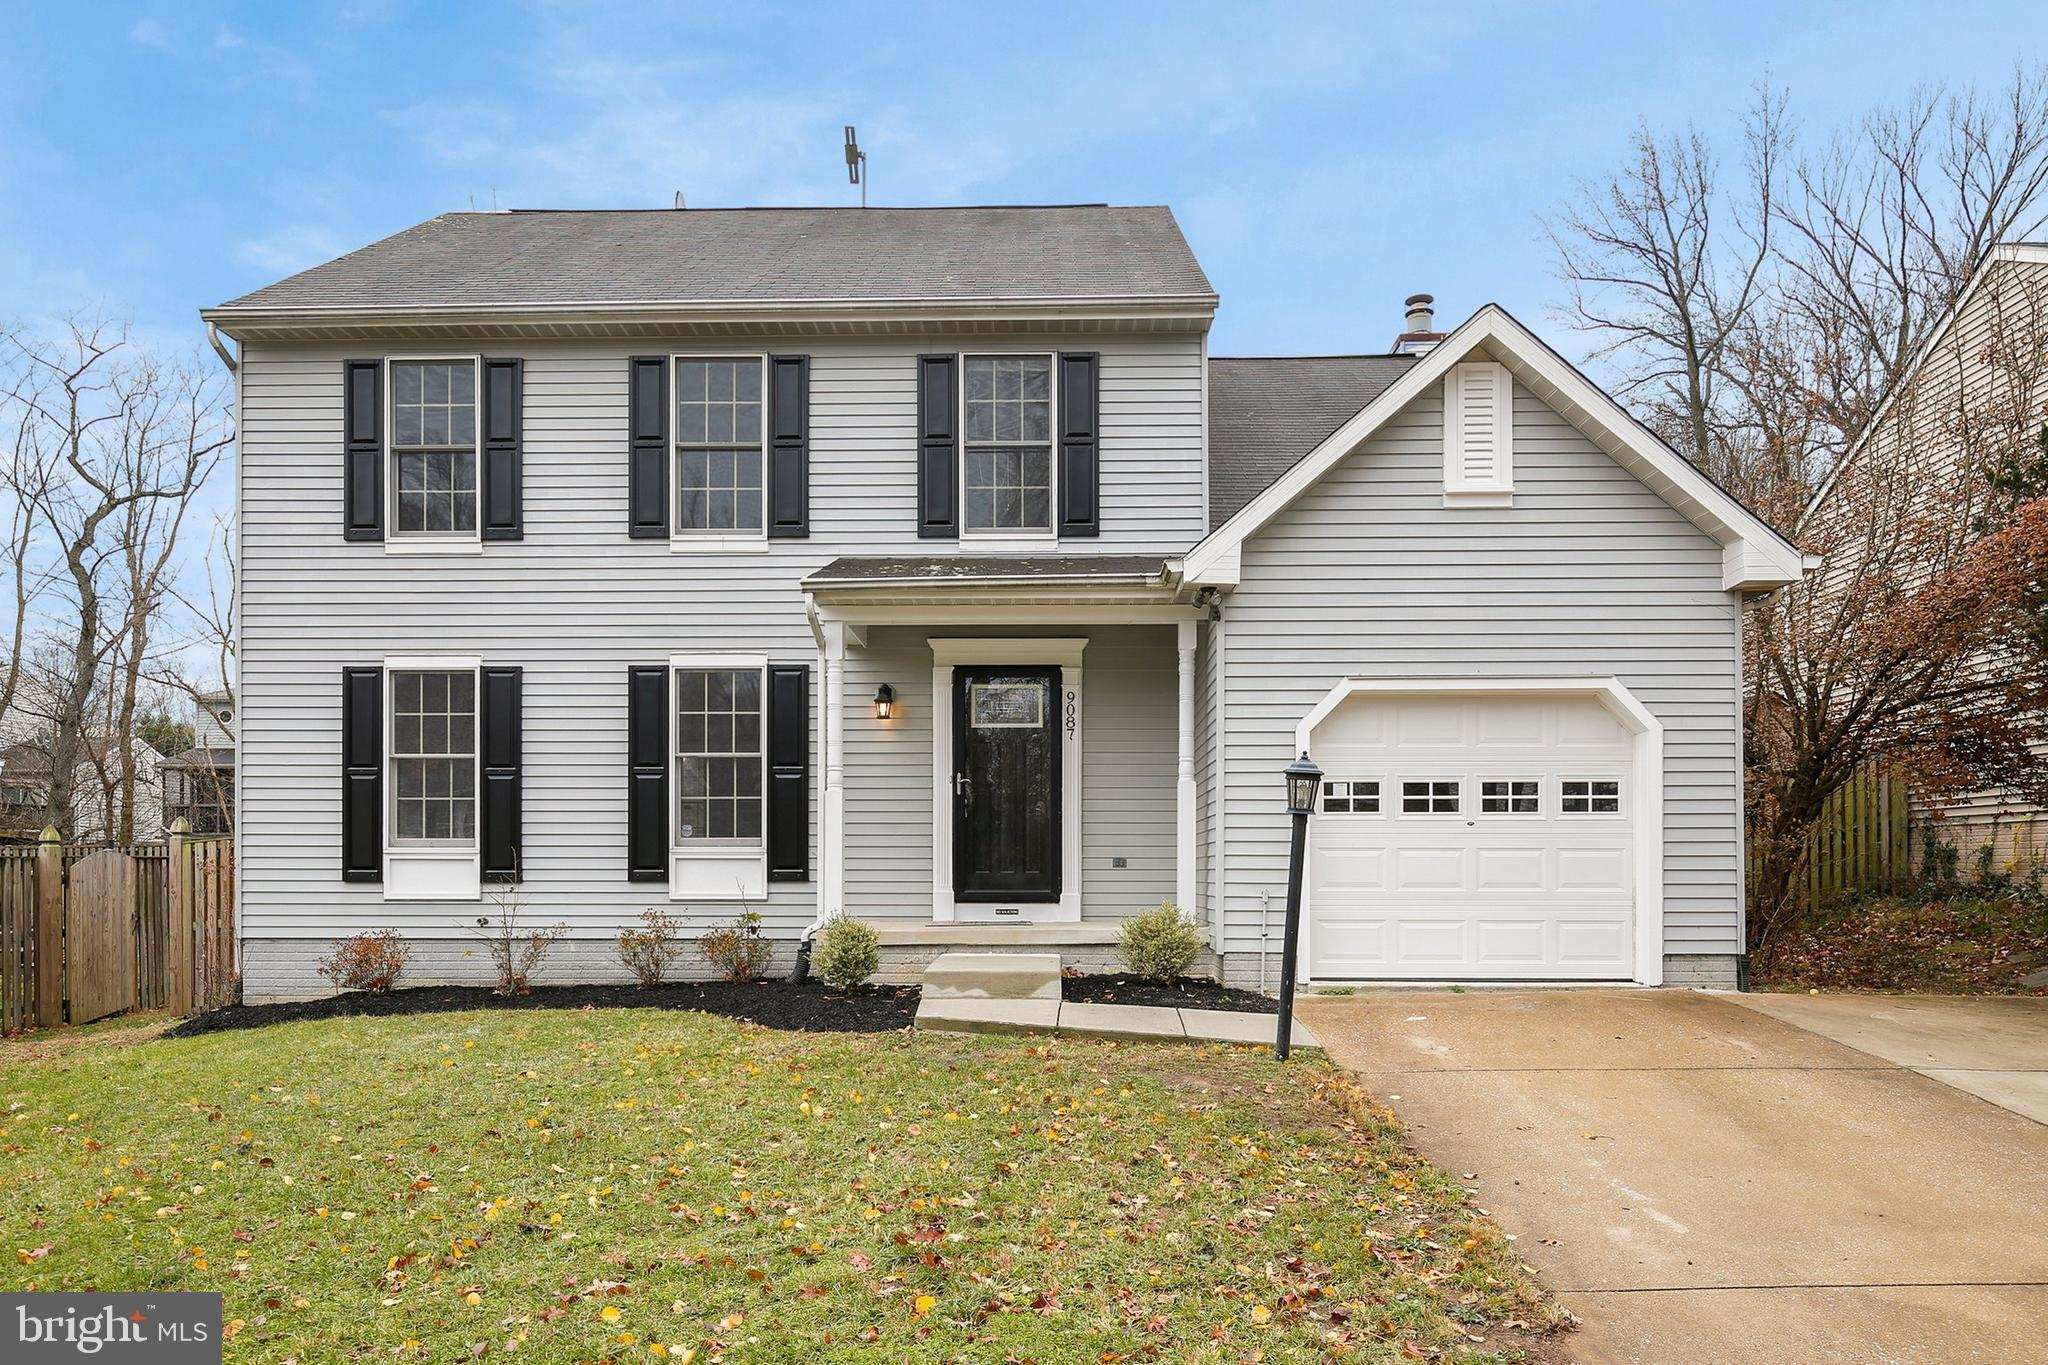 Gorgeous home alert! Welcome home to this well-built fully updated home! Shows like a model! This li